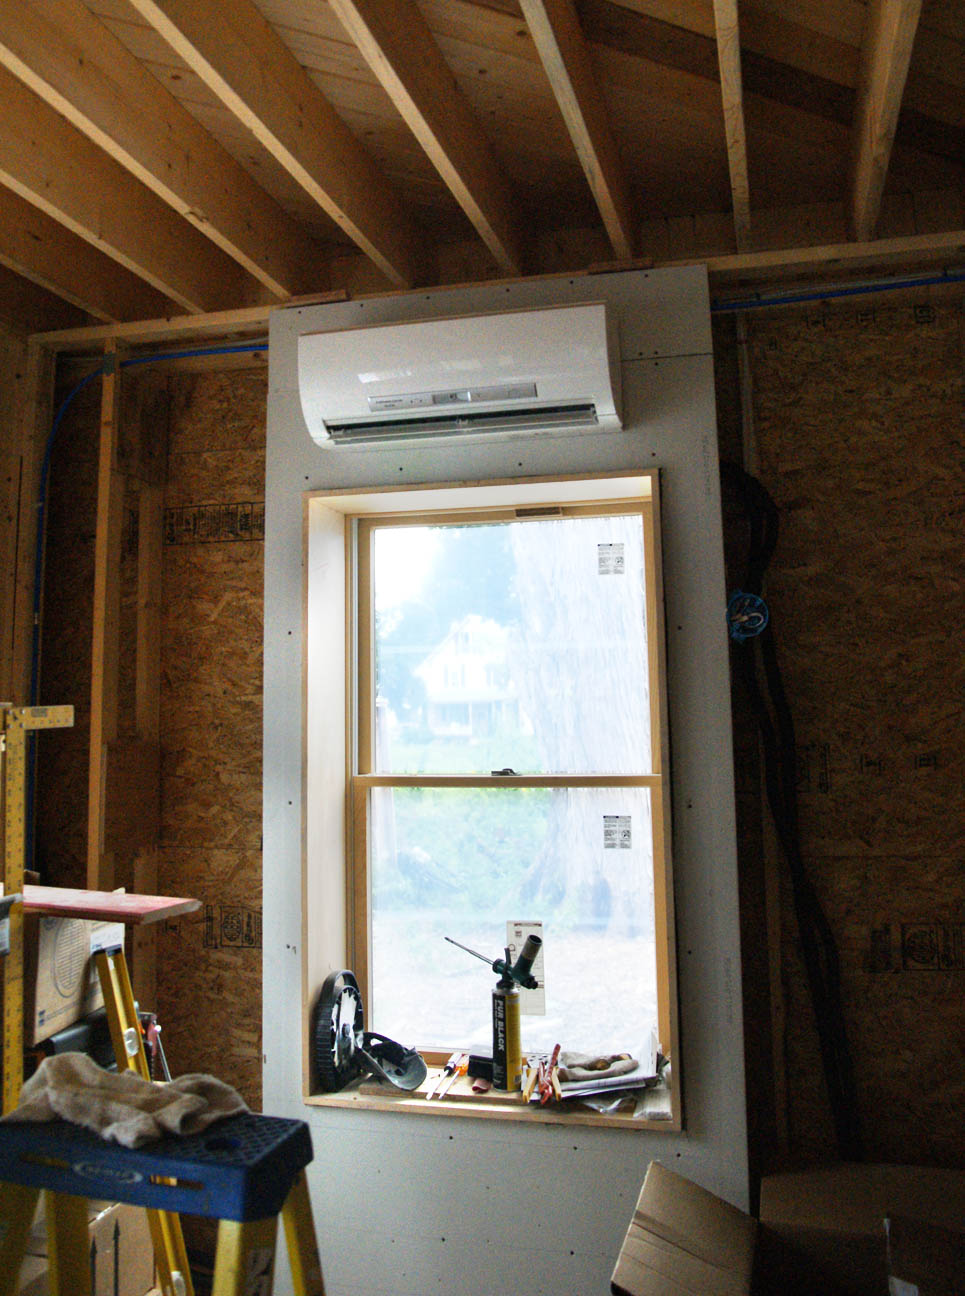 Mitsubishi Ductless Heat Pump Ductless Minisplit Design Amp Construction Of Spartan Amp Hannah39s Home